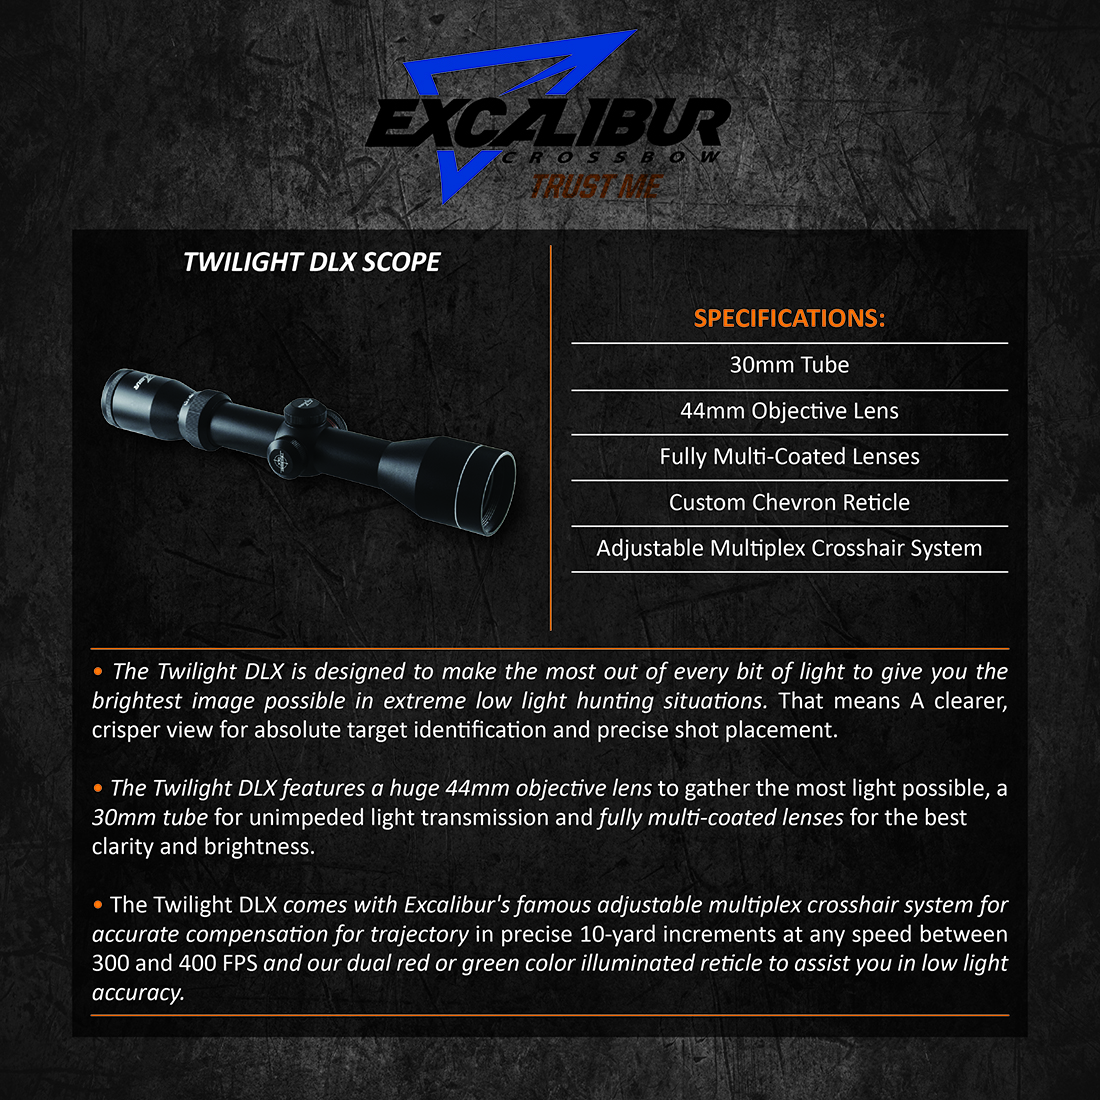 Excalibur_Twilight_DLX_Scope_Product_Description